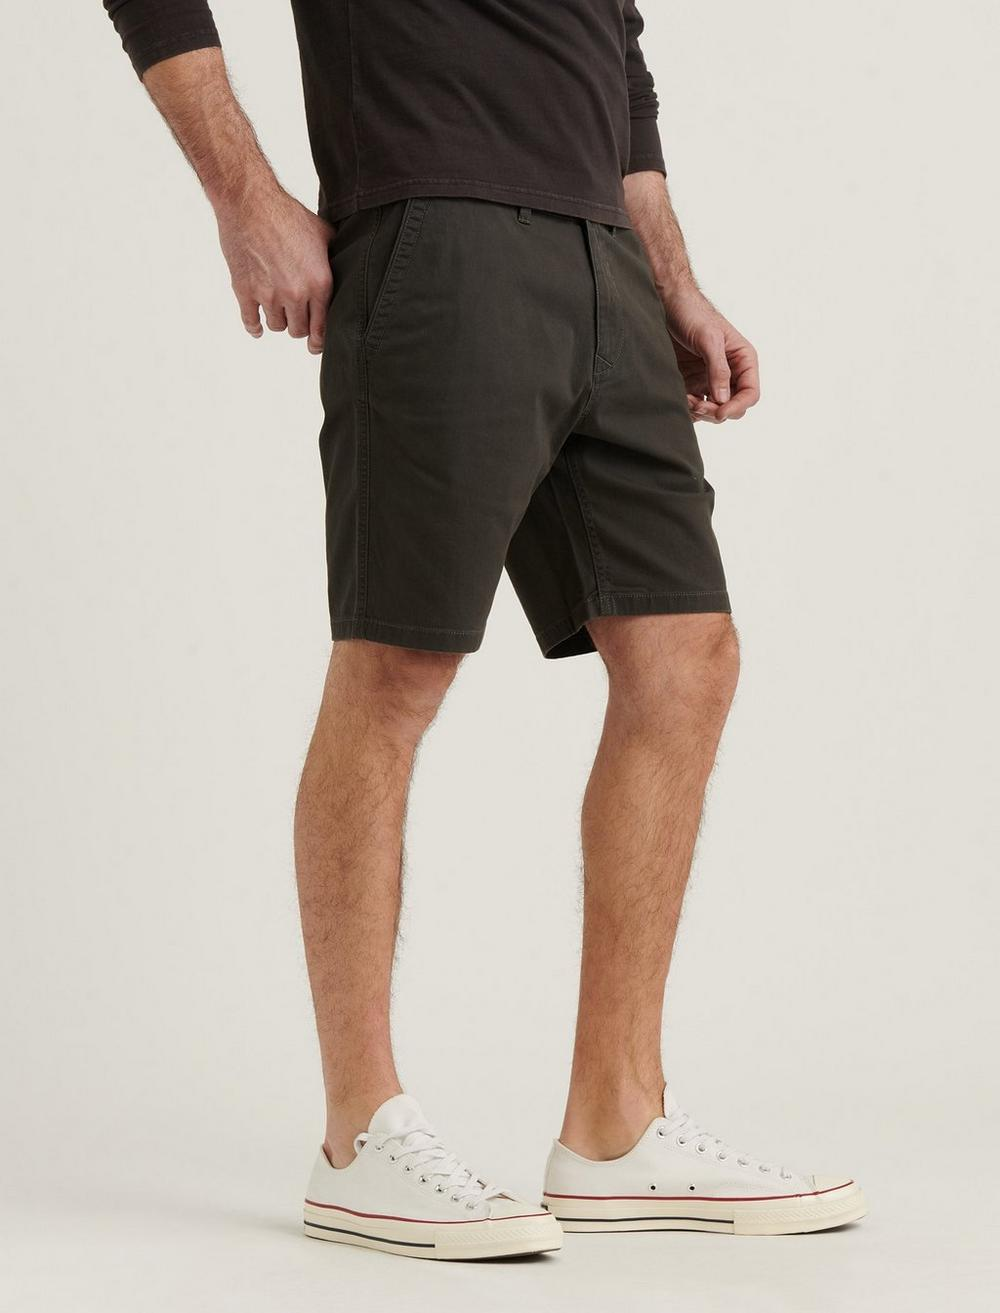 STRETCH TWILL FLAT FRONT SHORT, image 2